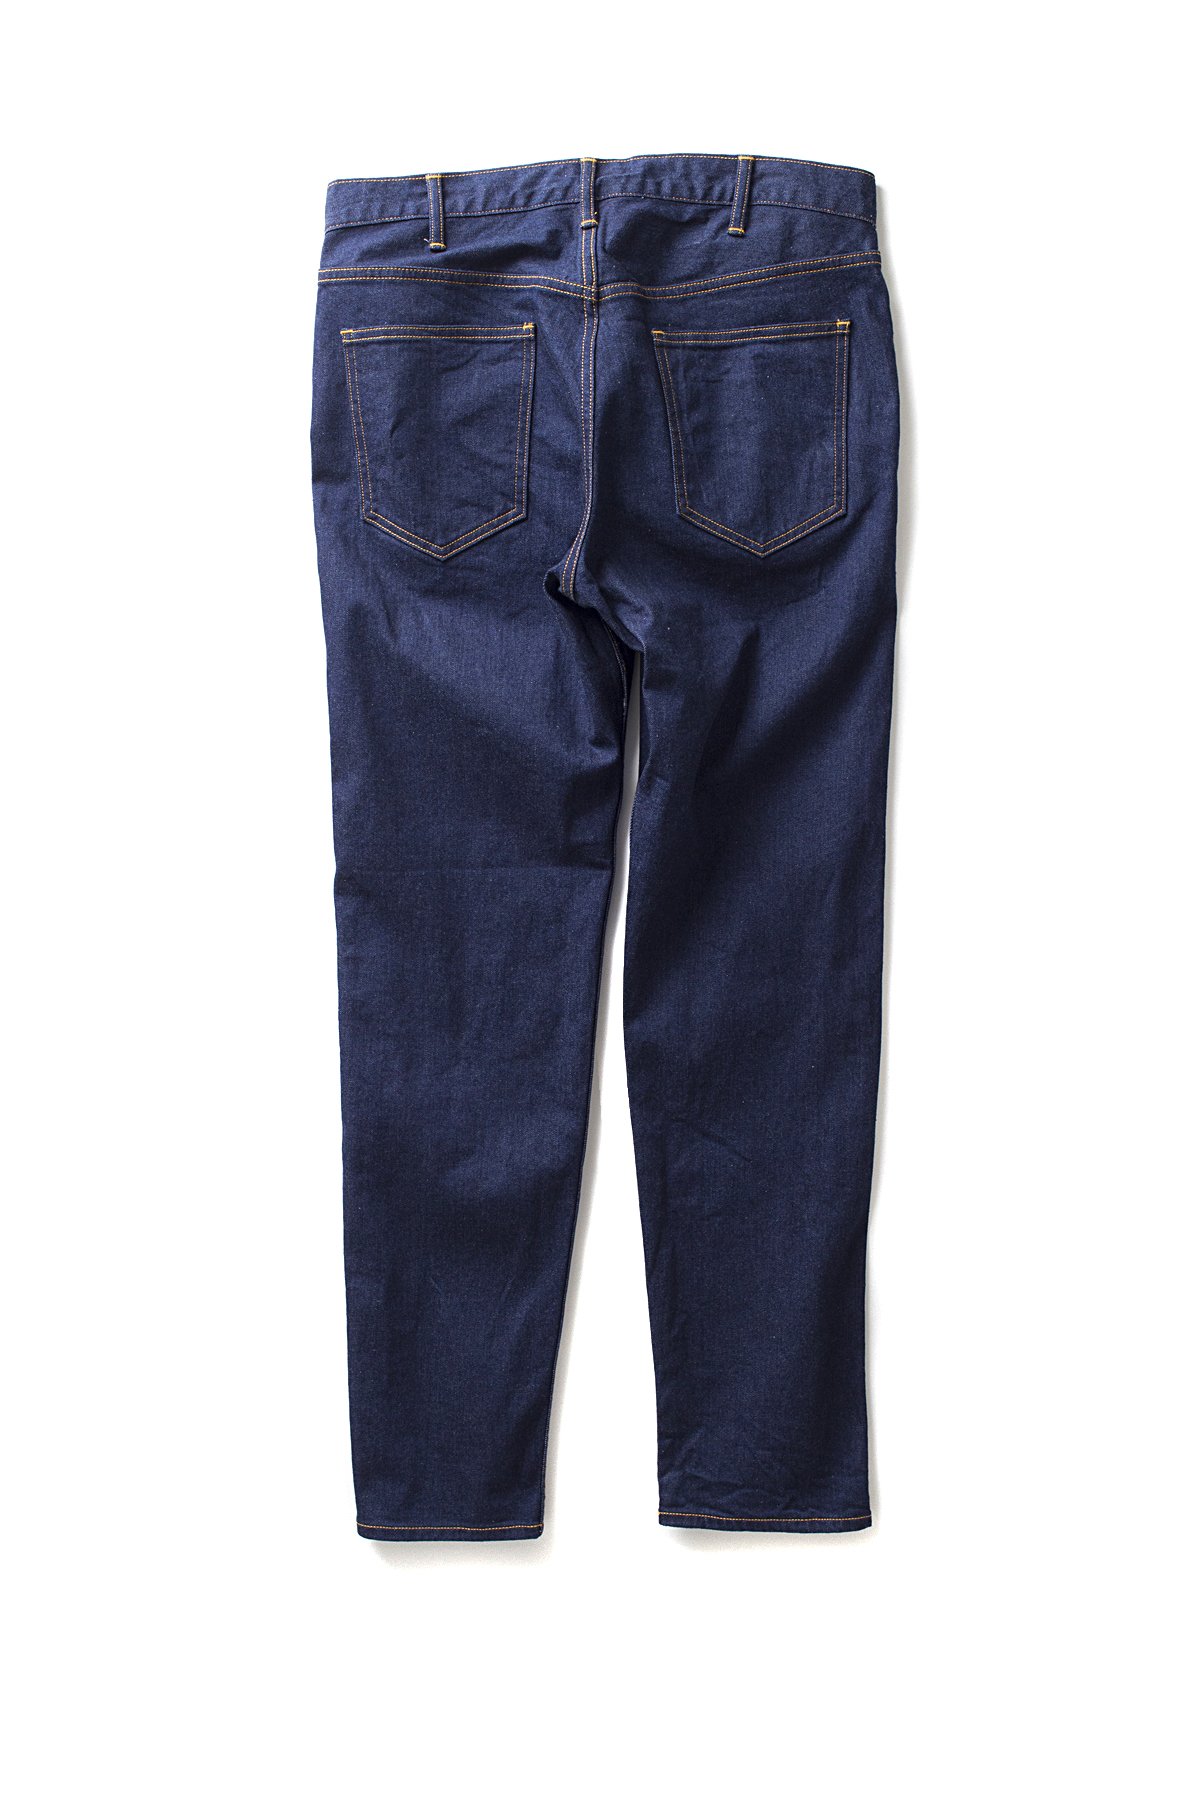 A vontade : 5Pocket Jeans Super Slim Fit (Indigo One Wash)